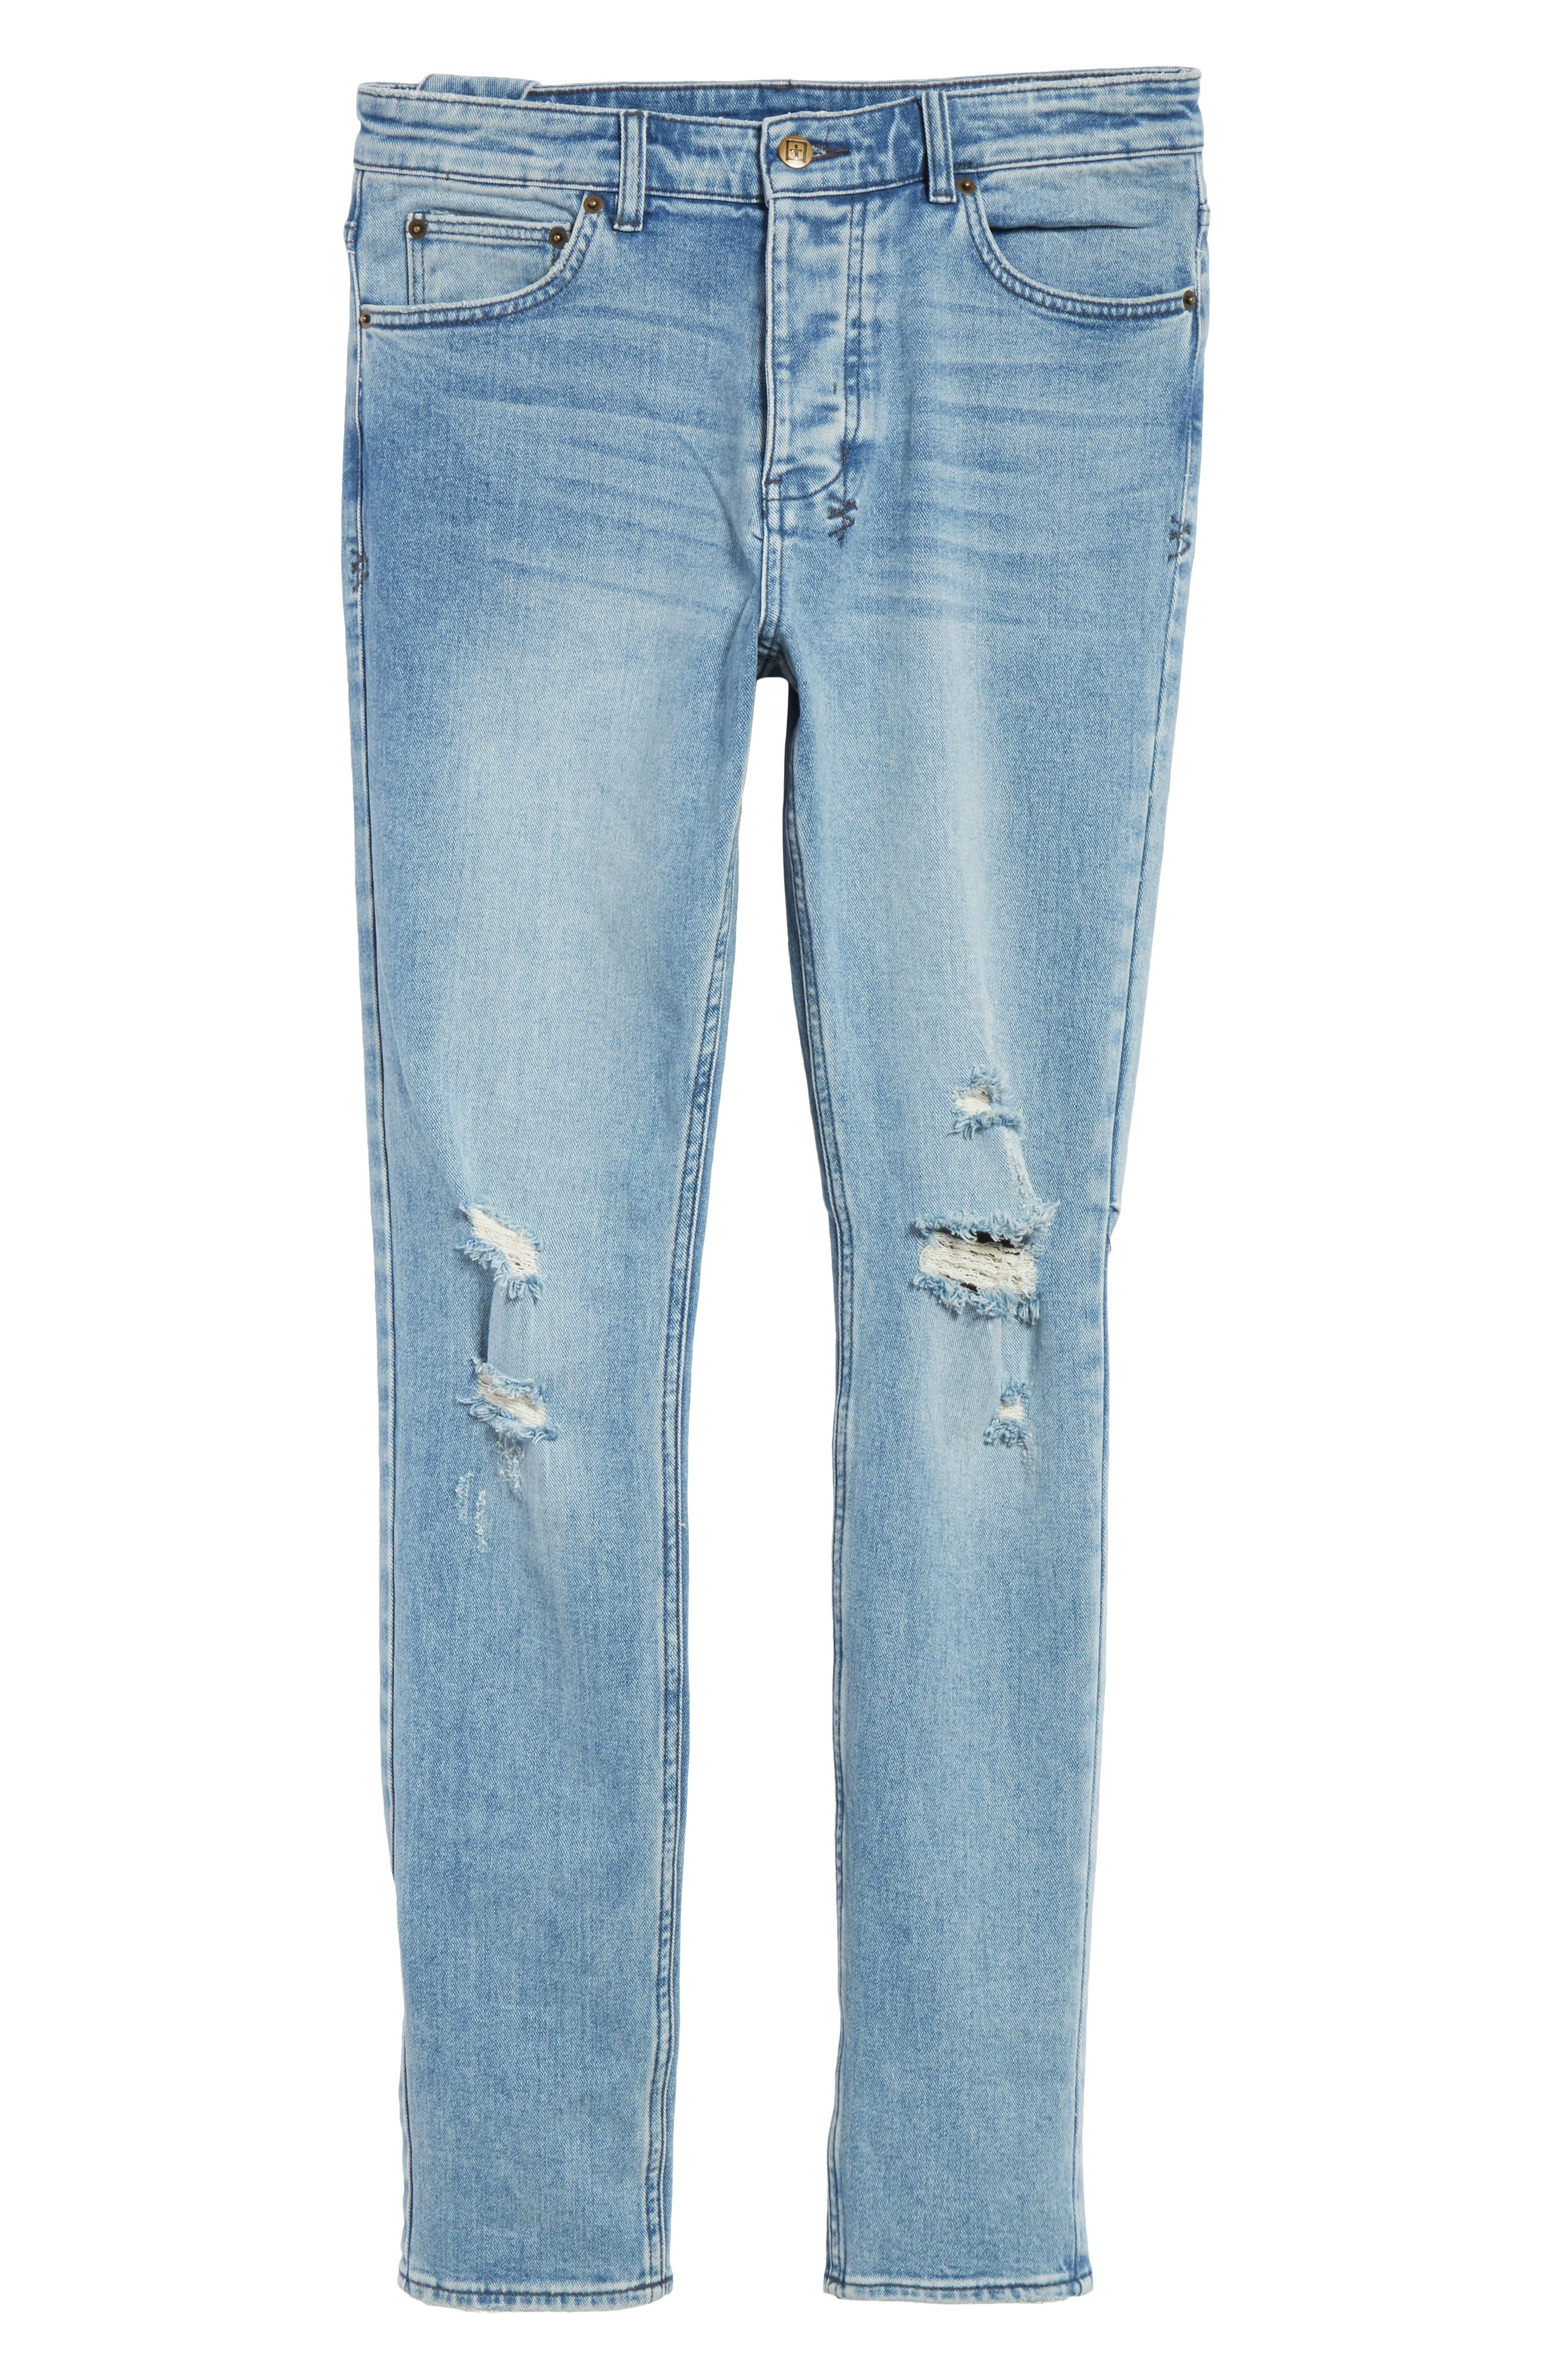 Chitch Philly Jeans,                             Alternate thumbnail 6, color,                             BLUE